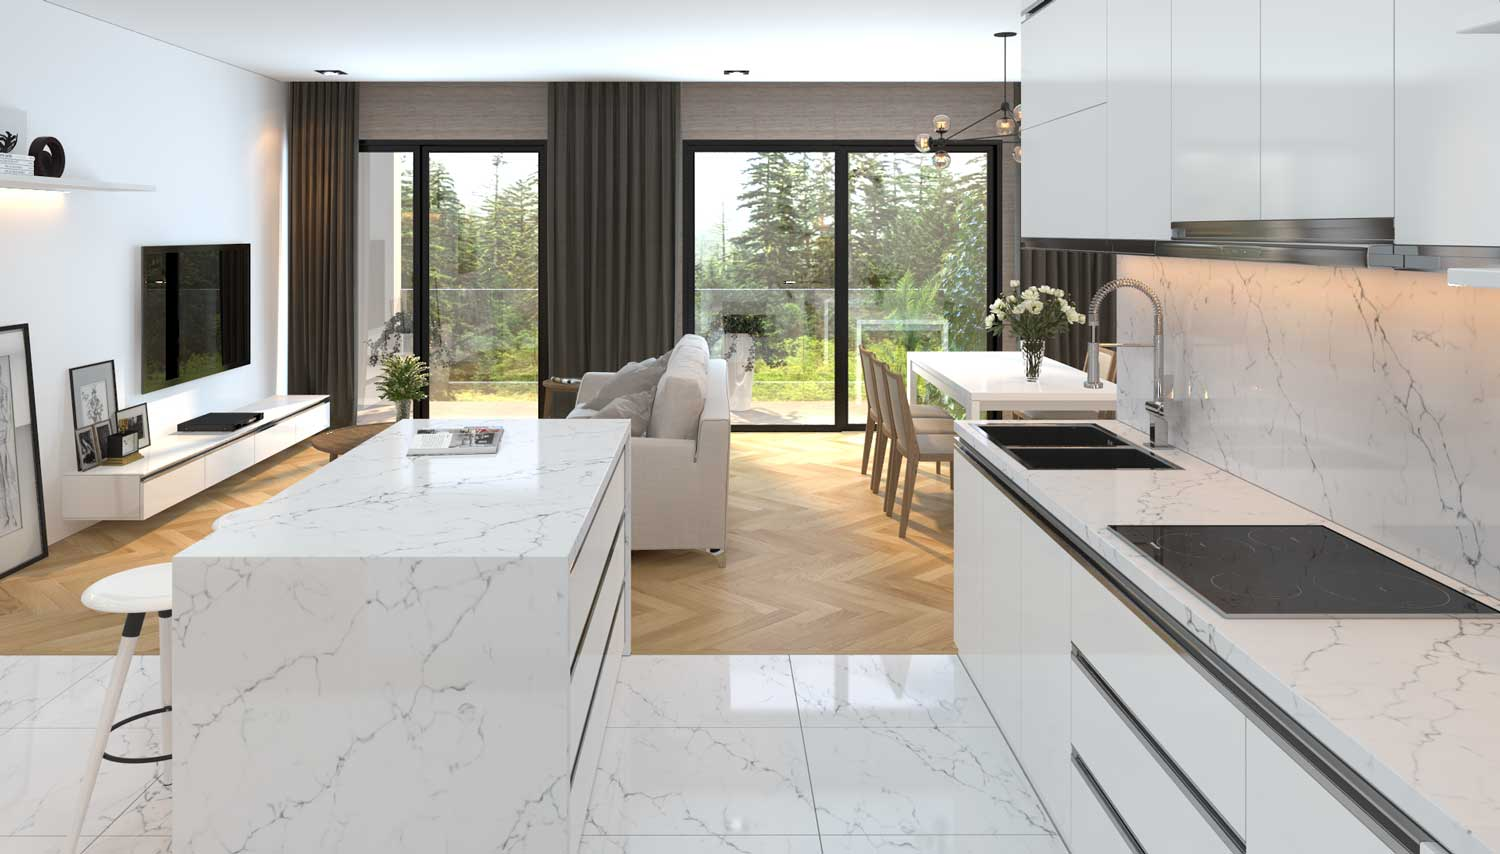 Vicostone Kitchen Countertops, Quartz Surfaces, Quartz